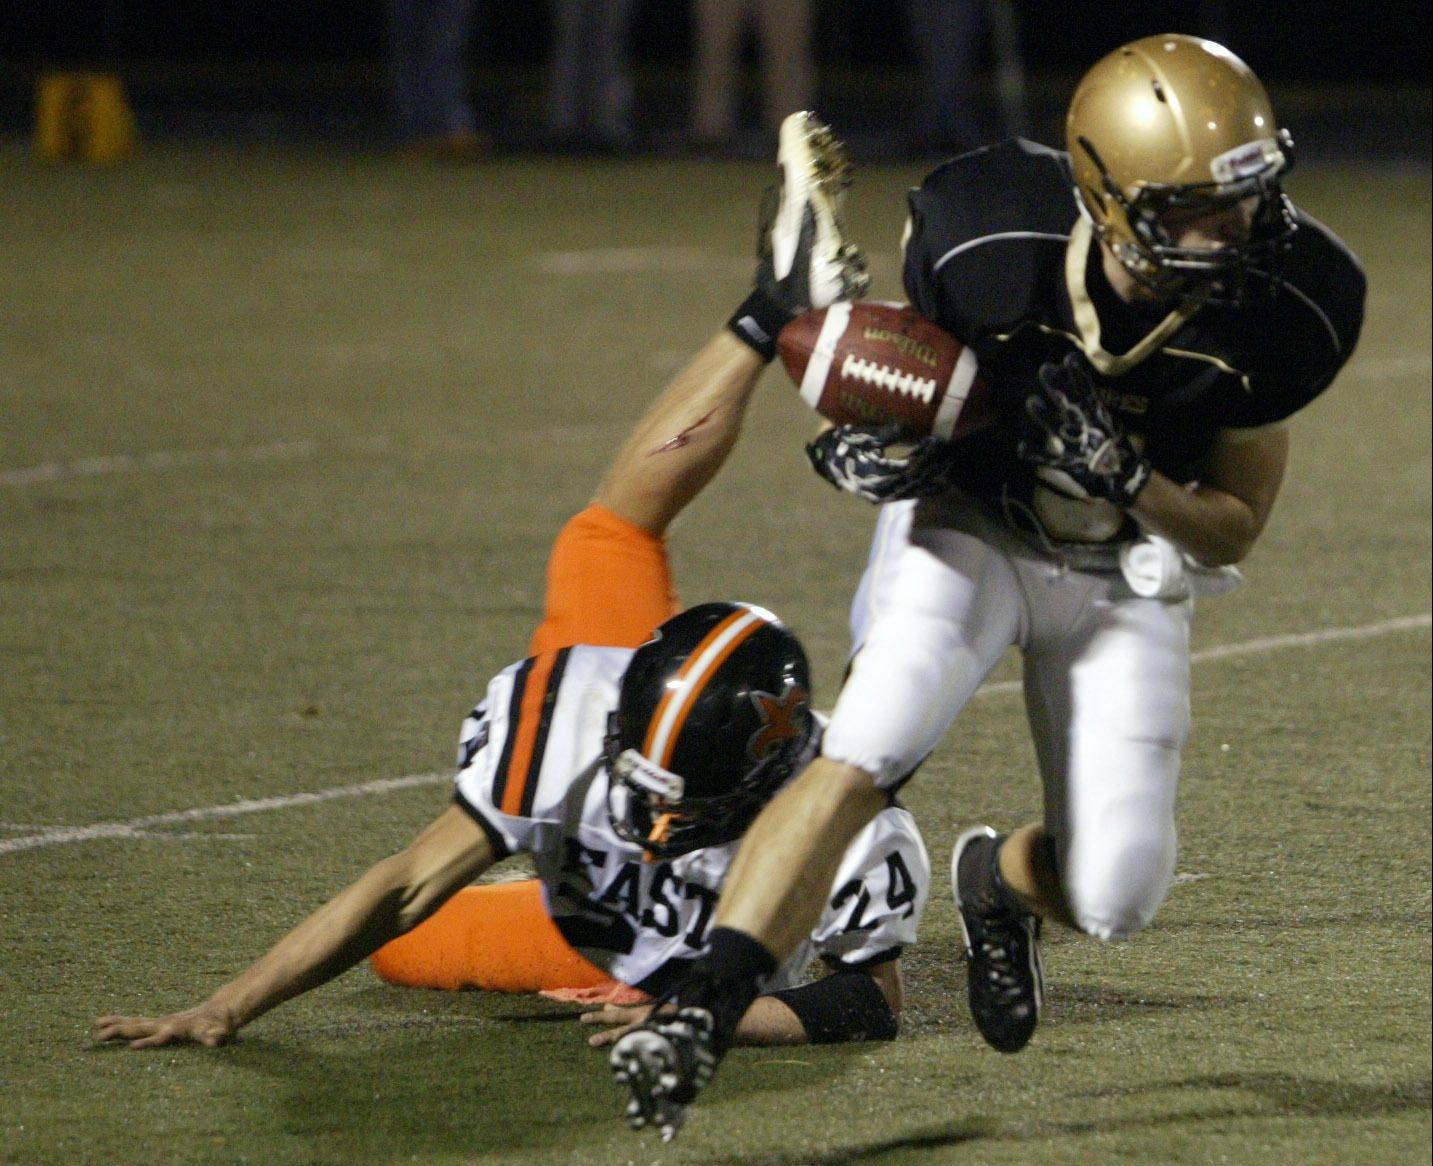 Streamwood�s Austin Mugnai breaks St. Charles East�s Tim Leibforth�s tackle Friday at Streamwood High School.